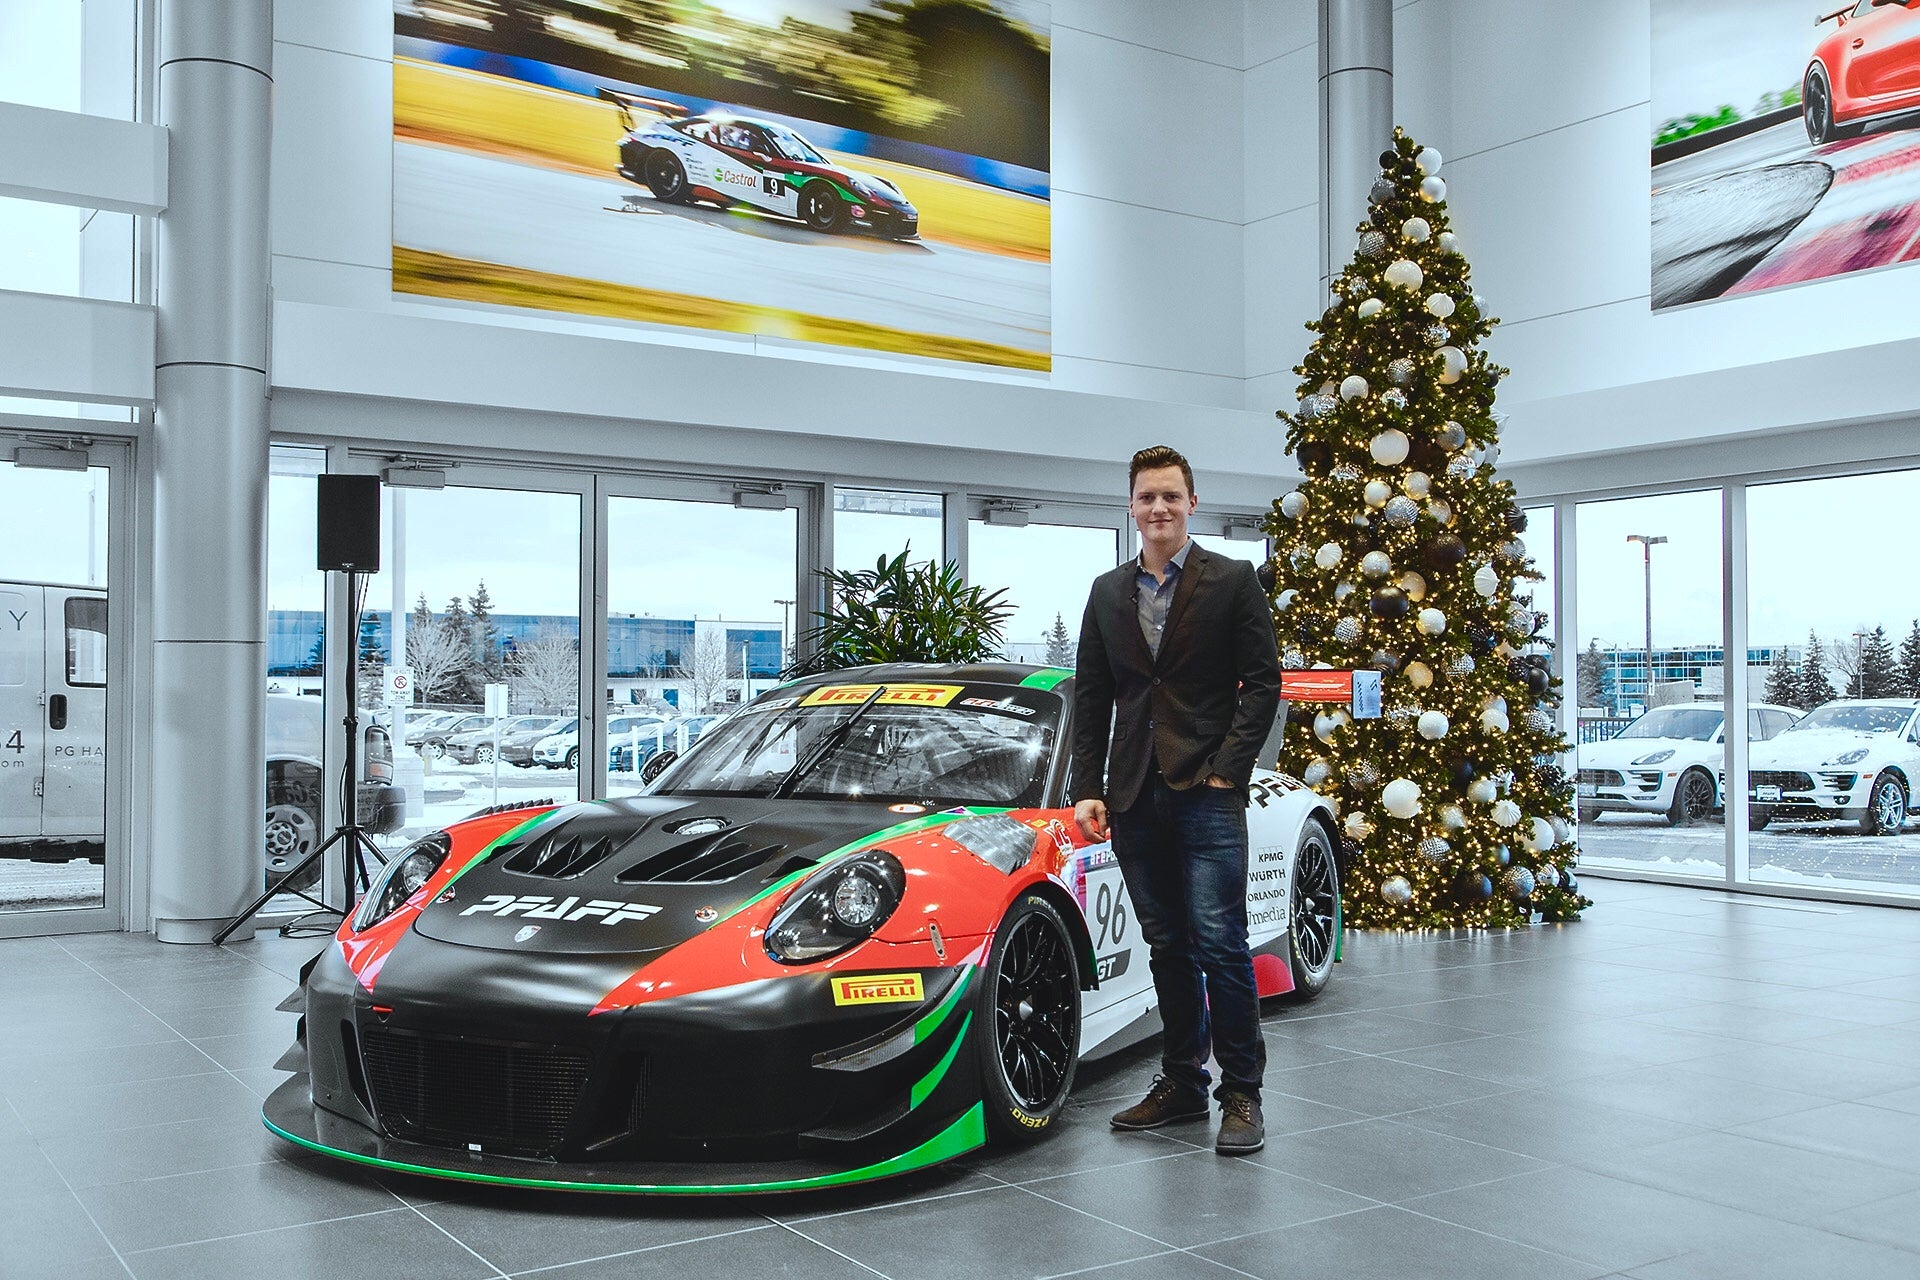 Hargrove Enters 2018 Pirelli World Challenge with Pfaff Motorsports and Porsche